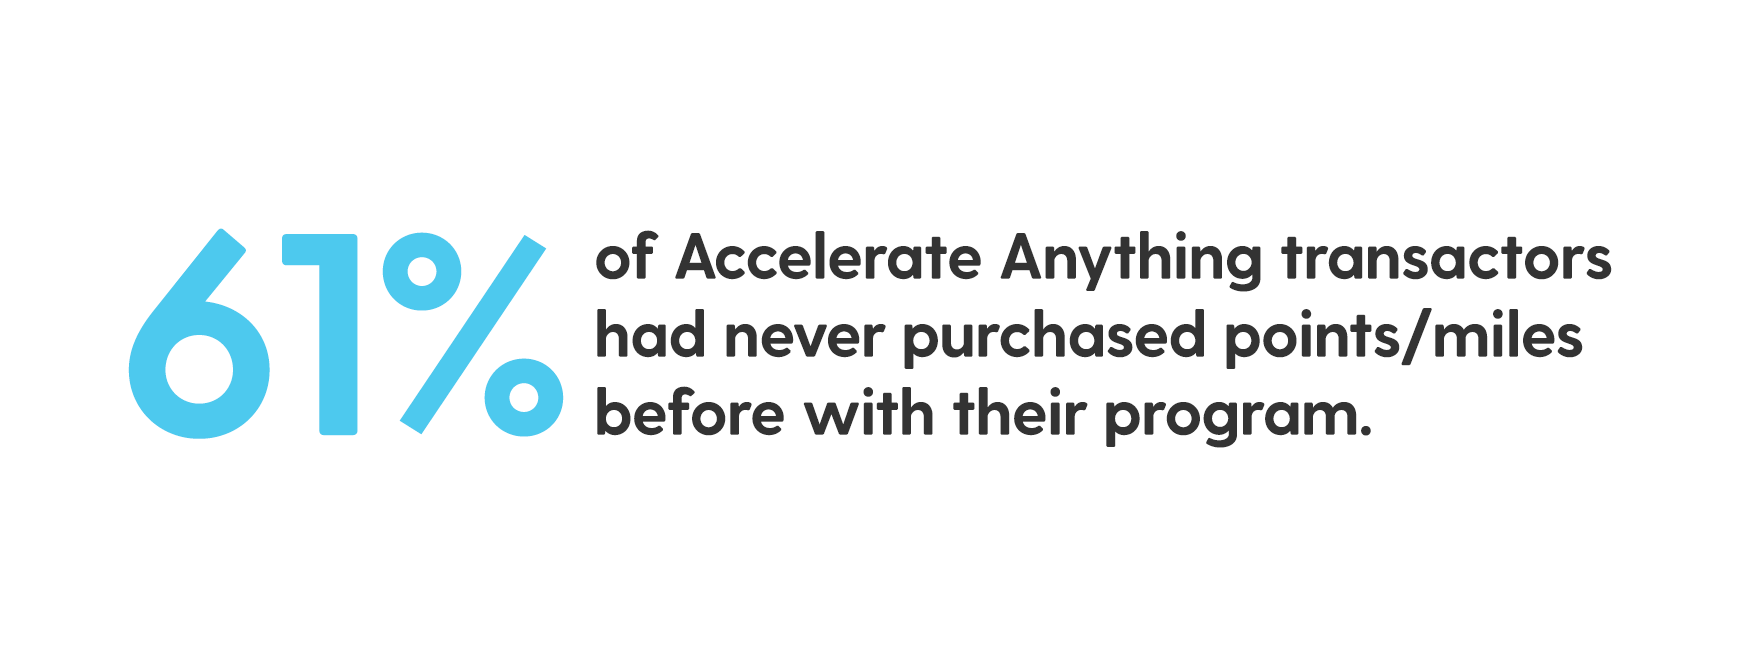 Statistic: 61% of Accelerate Anything transactors had never purchased points/miles before with their program.